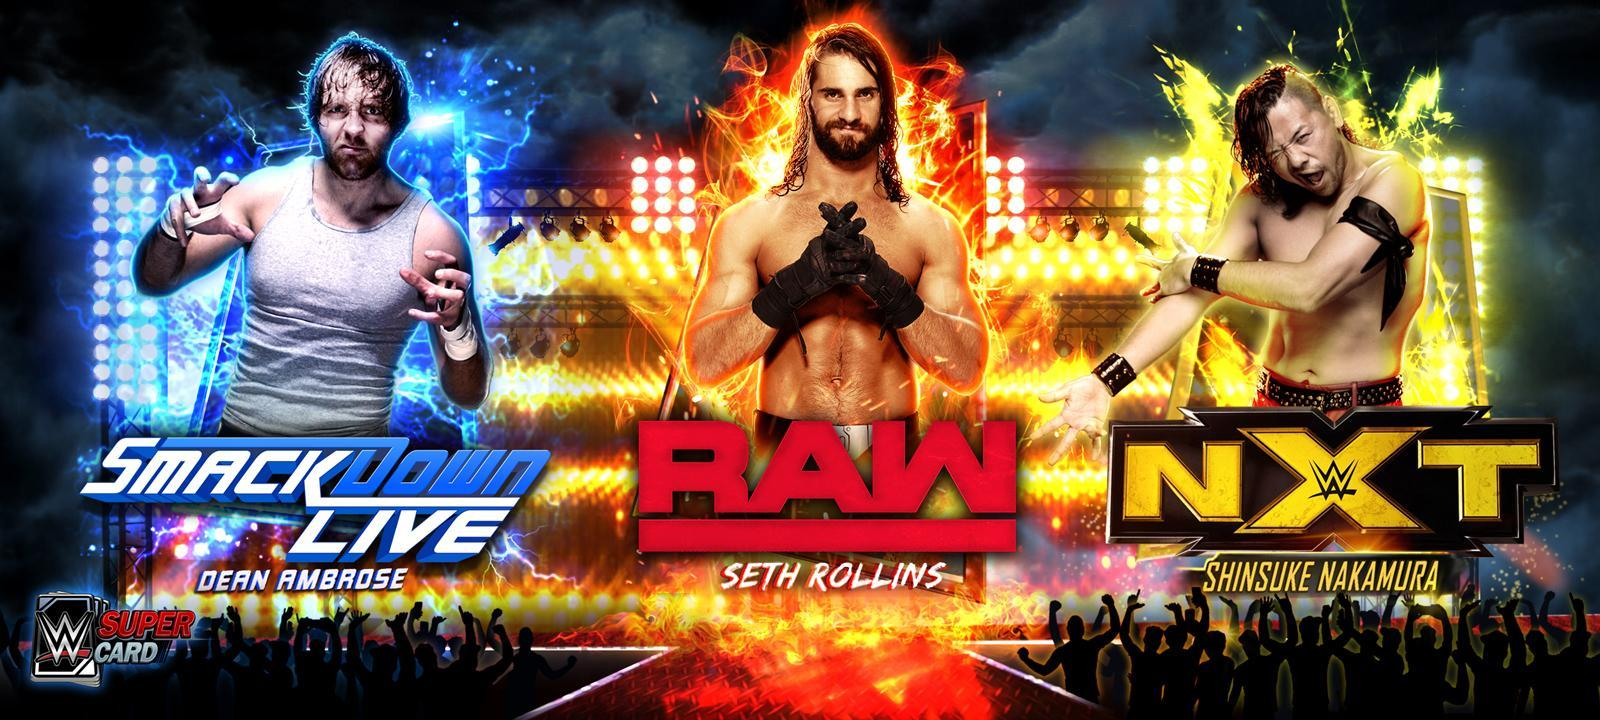 WWE SuperCard Season 3 features three new tiers with Raw, SmackDown and NXT cards